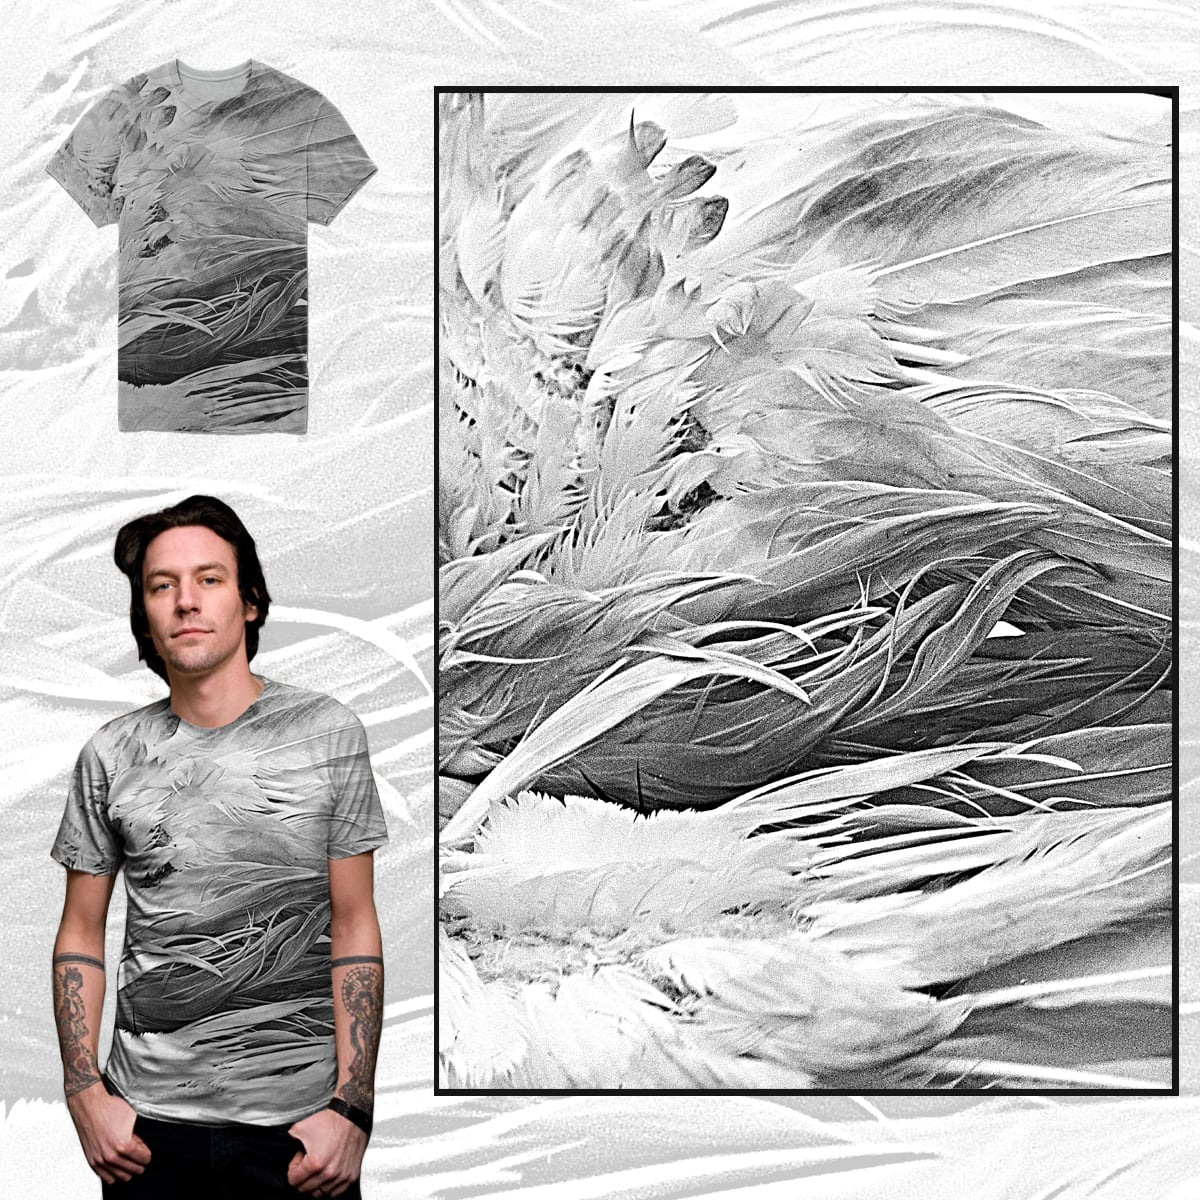 Goose feathers by barmalisiRTB on Threadless